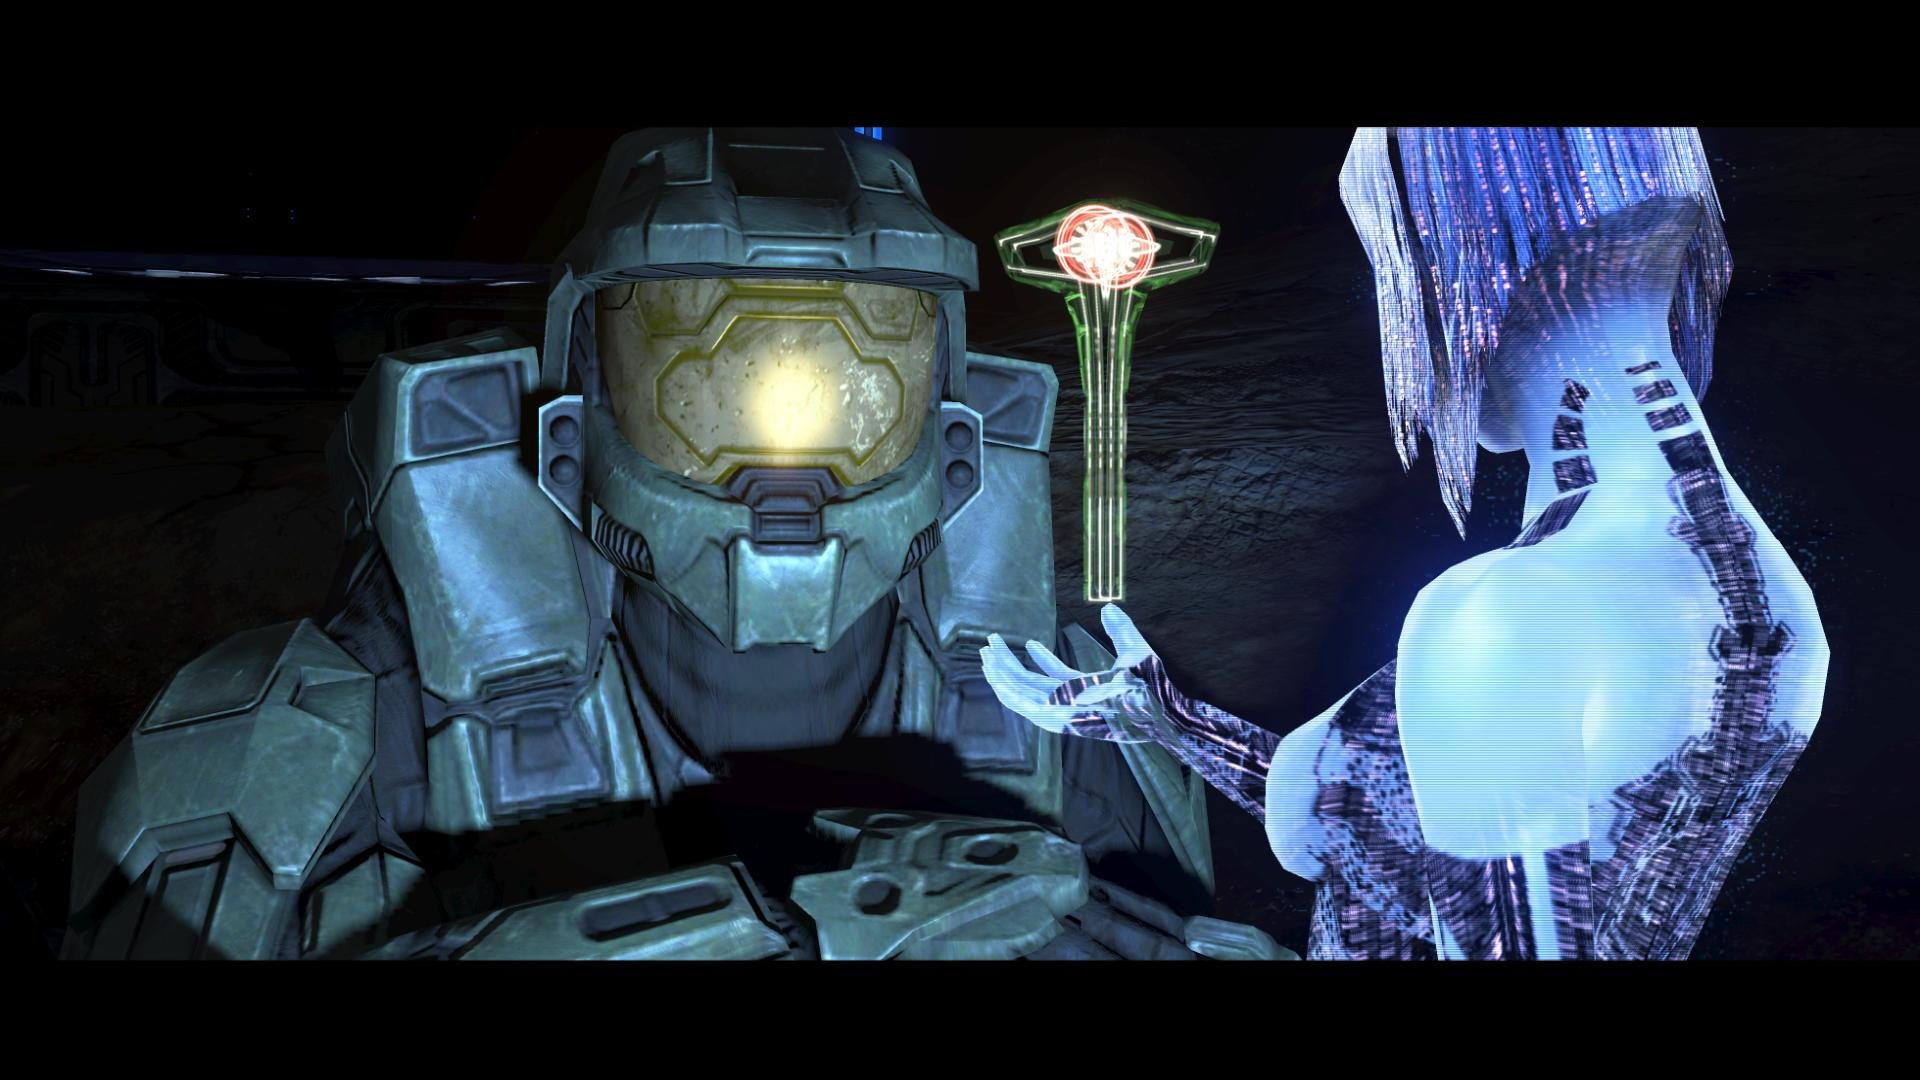 Halo 3 wallpapers HD for desktop backgrounds